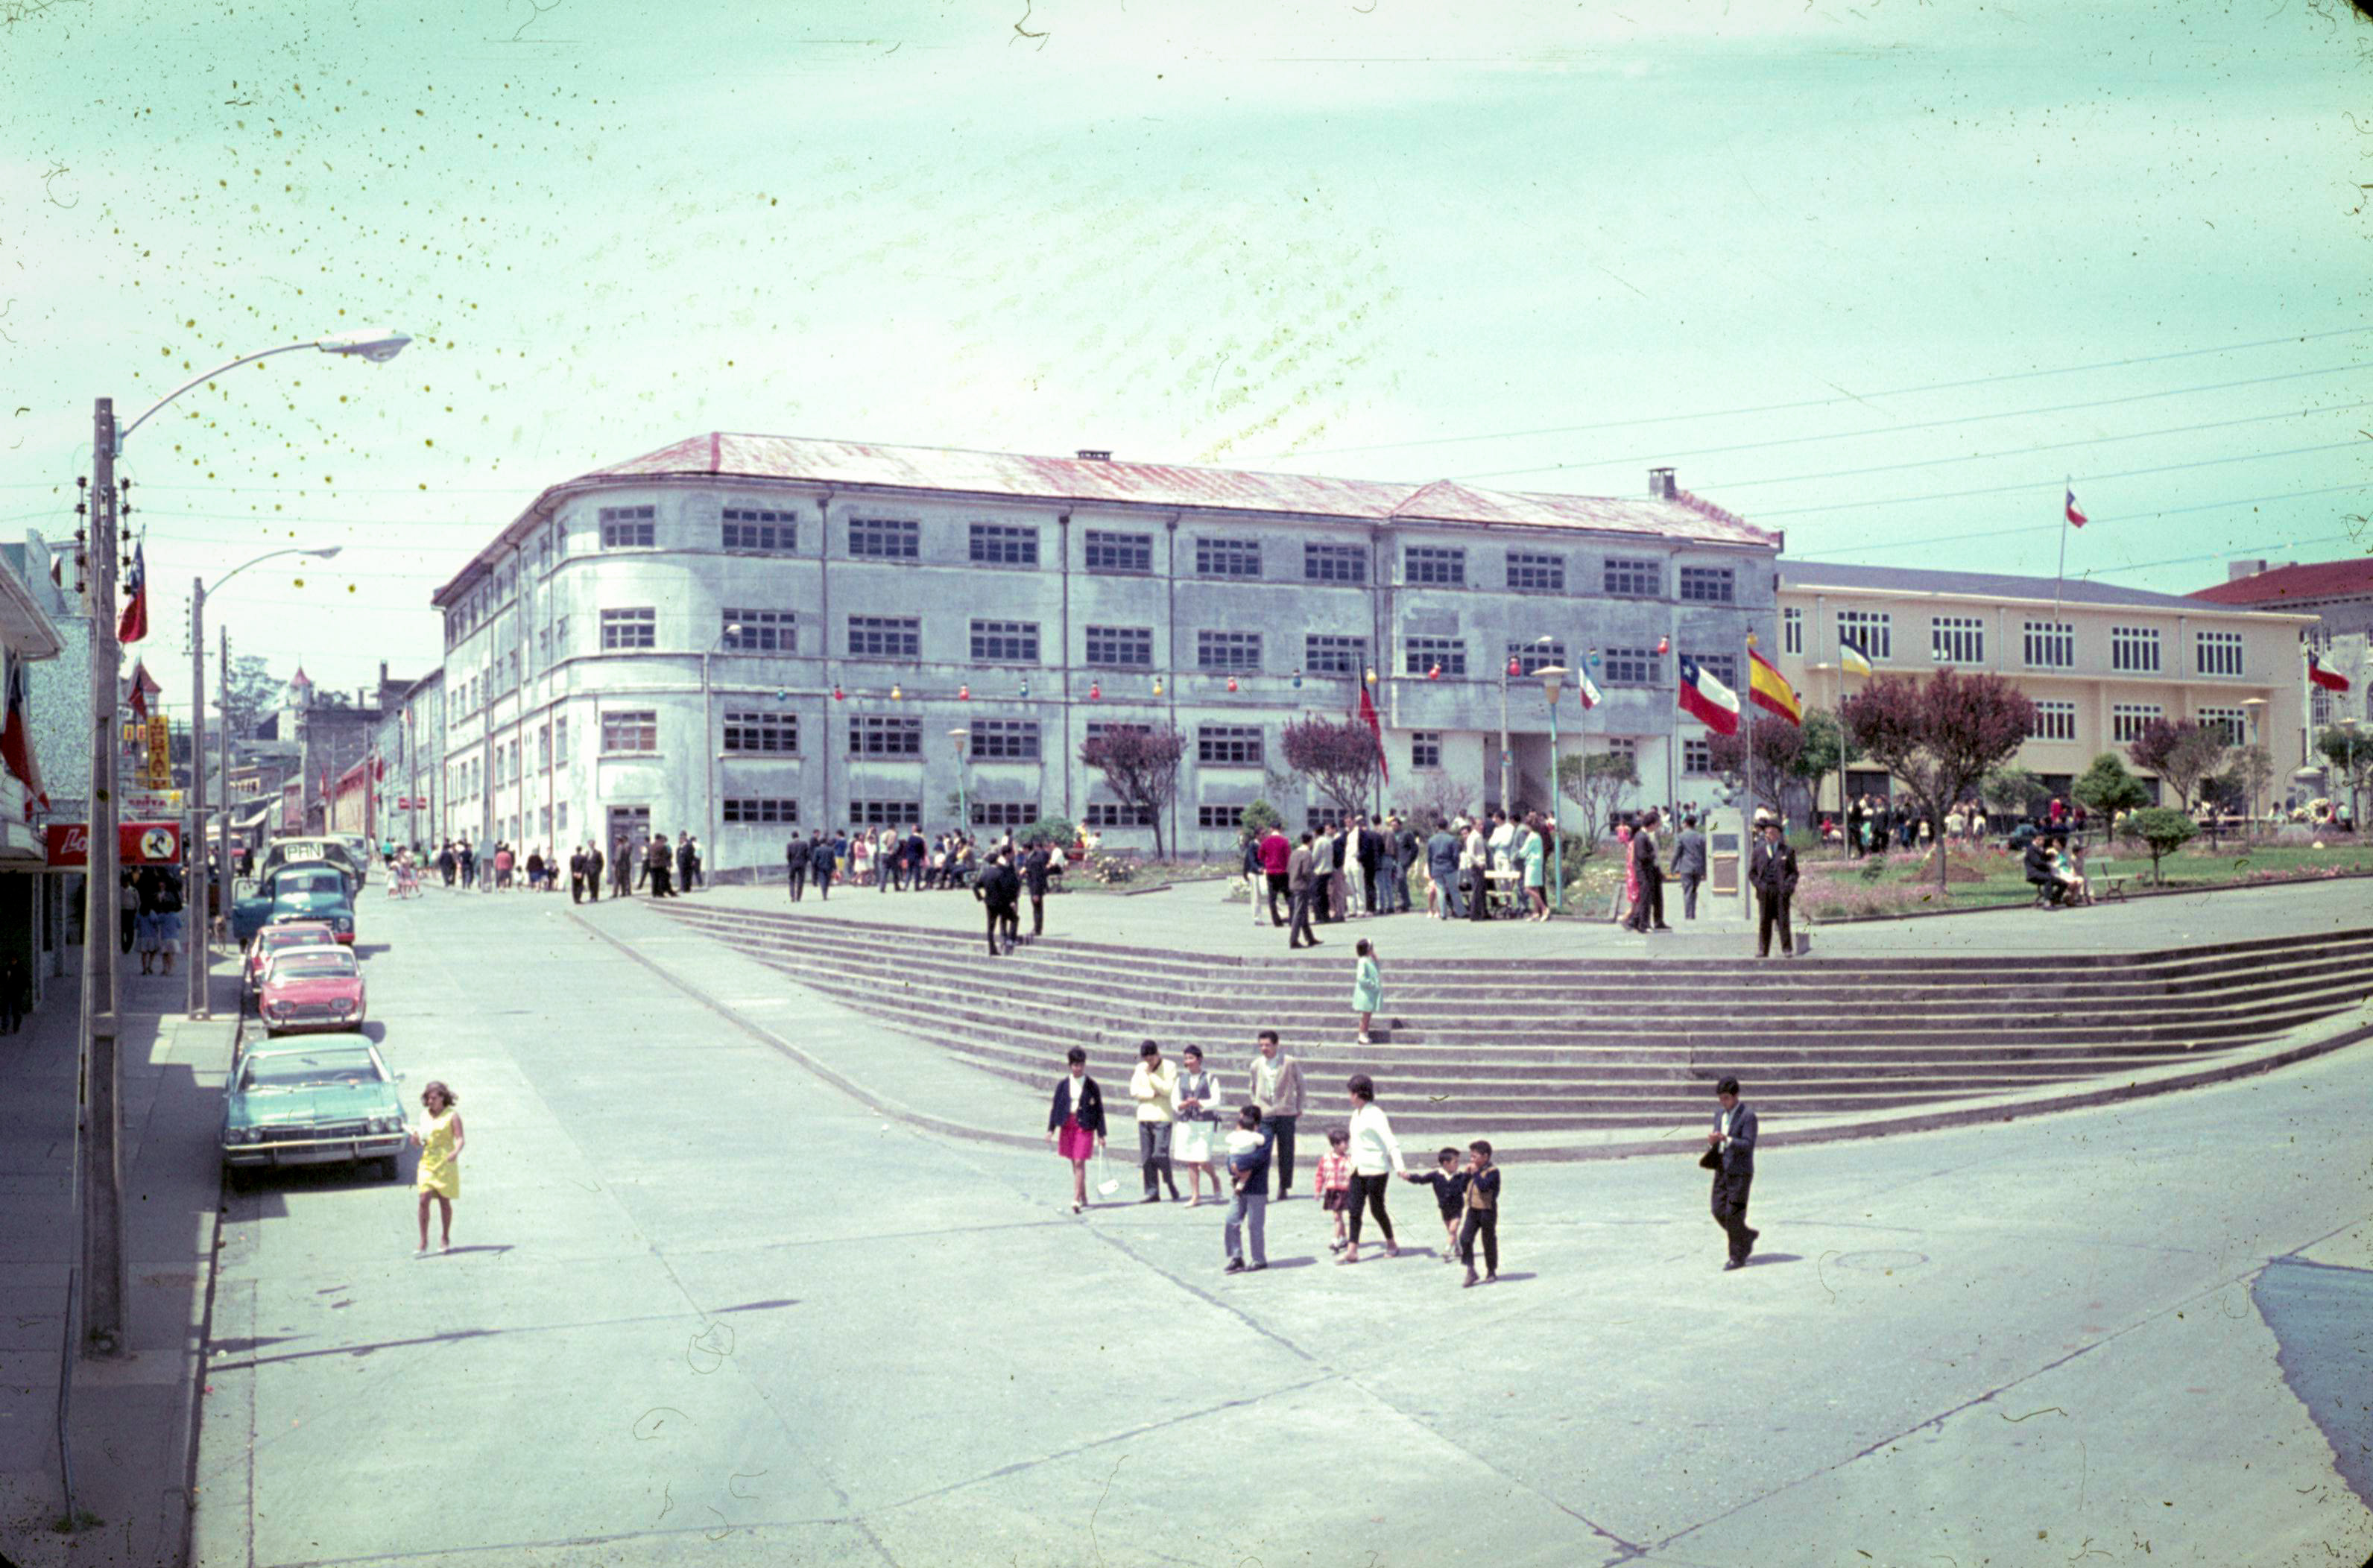 Enterreno - Fotos históricas de chile - fotos antiguas de Chile - Plaza de Armas de Ancud, 1967